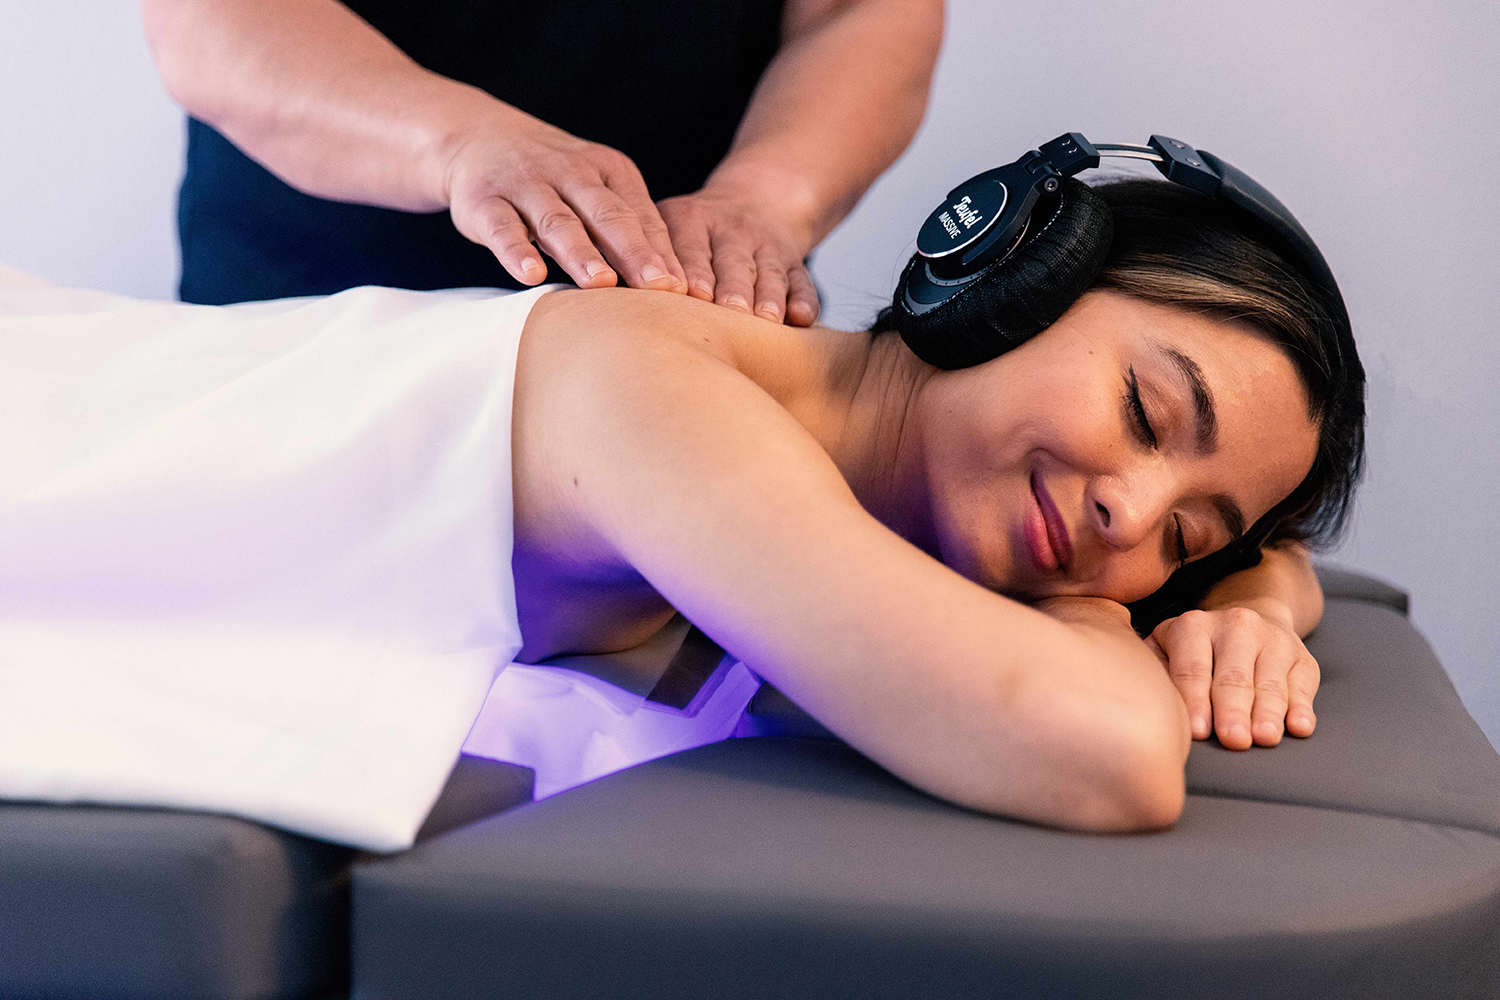 The innovative sensory body treatment pairs traditional massage techniques with the gentle vibrations of the Spa.Wave massage table, special music, and an eye cover.